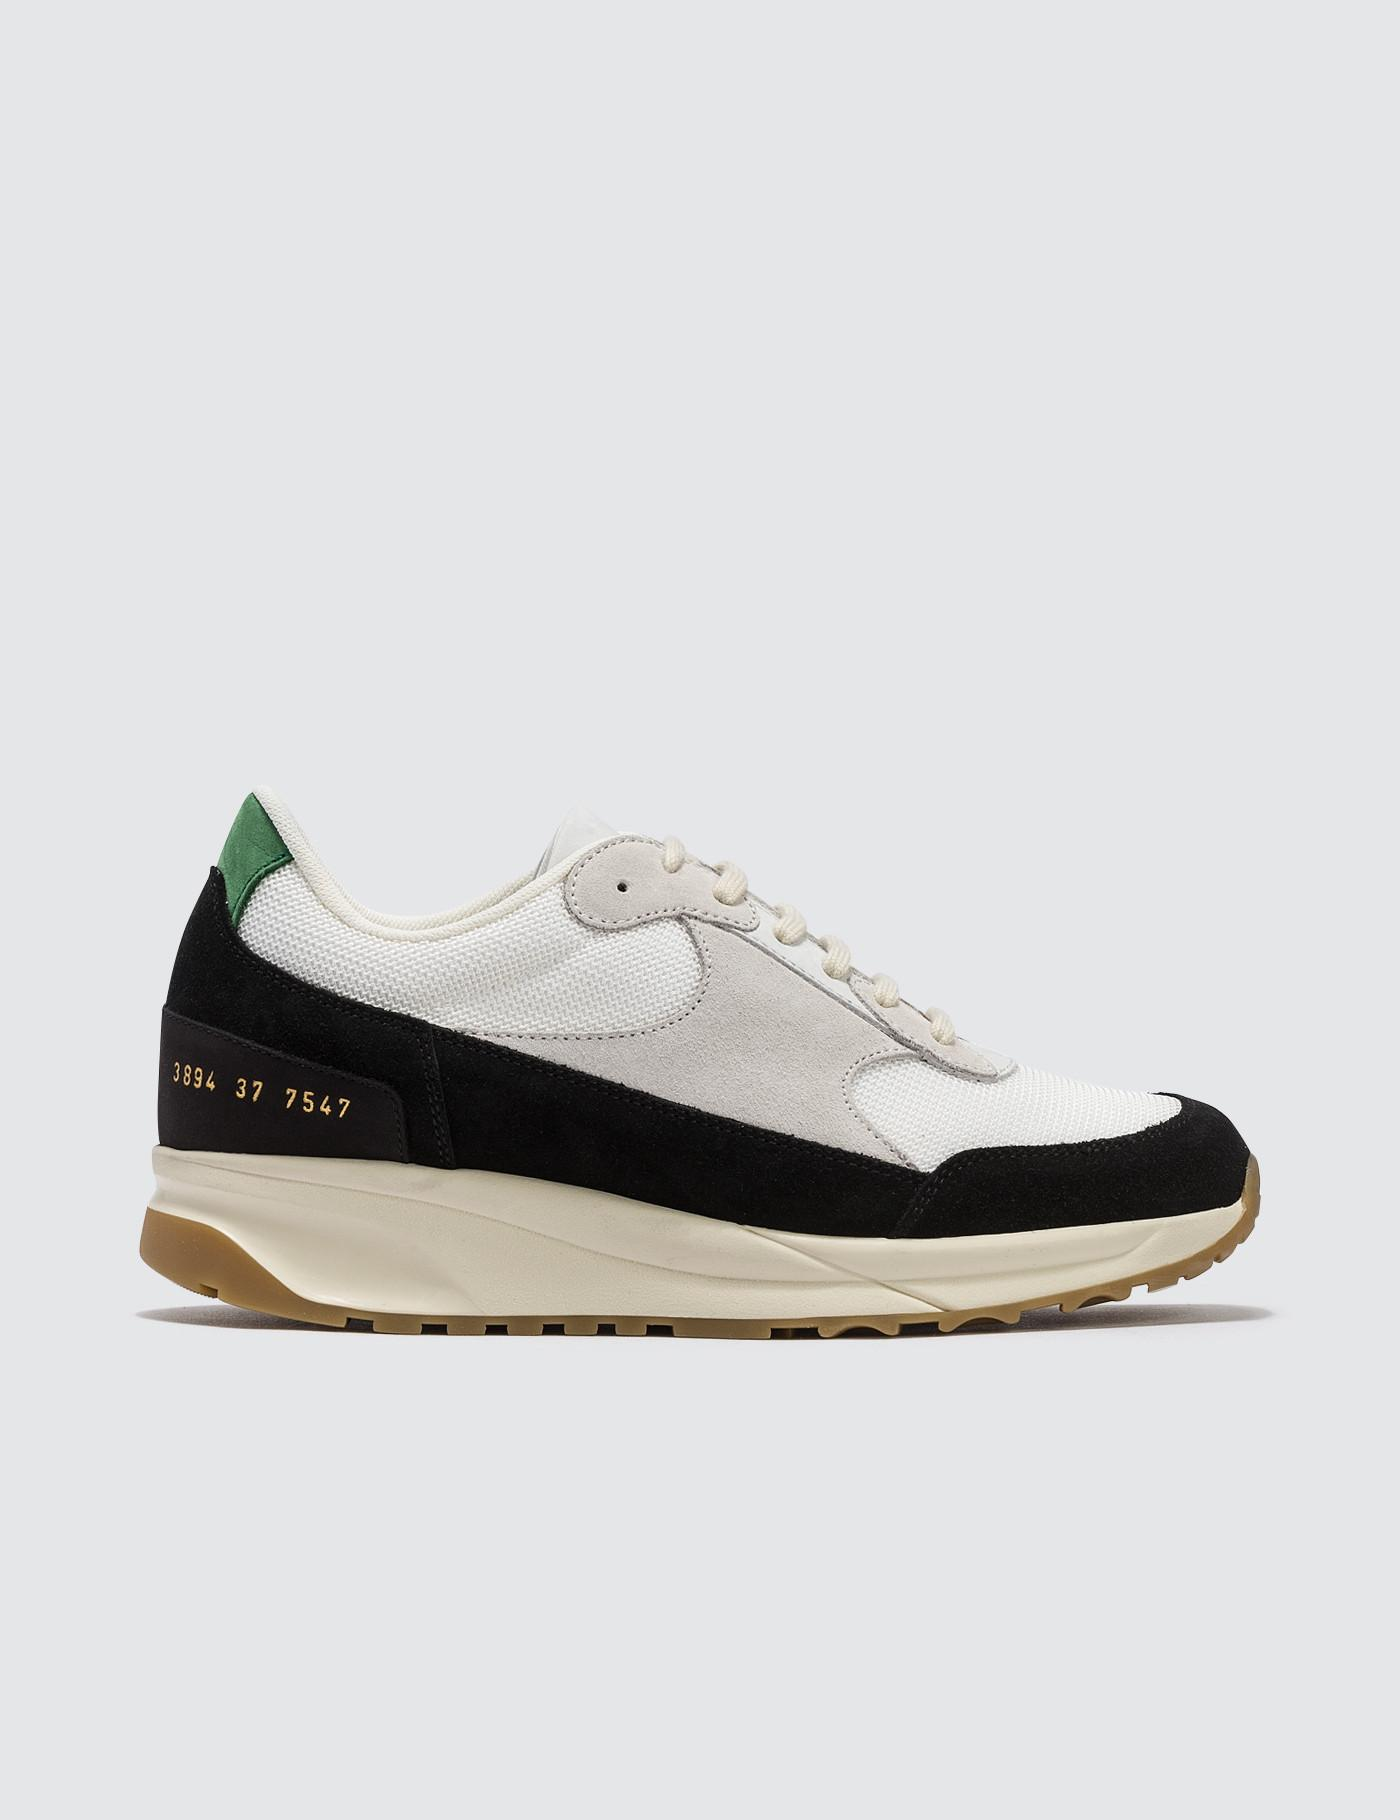 779035c78f45 Lyst - Common Projects New Track Suede-trimmed Sneakers in Black ...